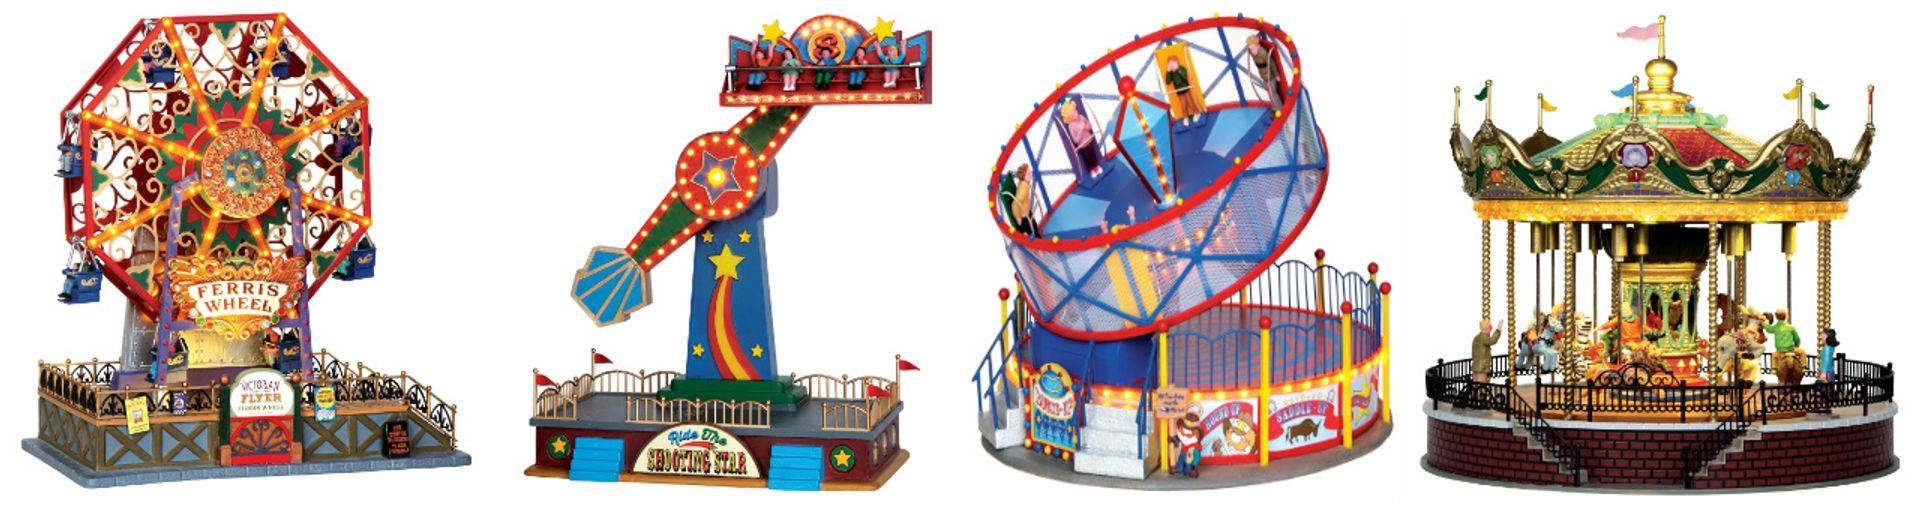 Lemax Resin Fairground ride models